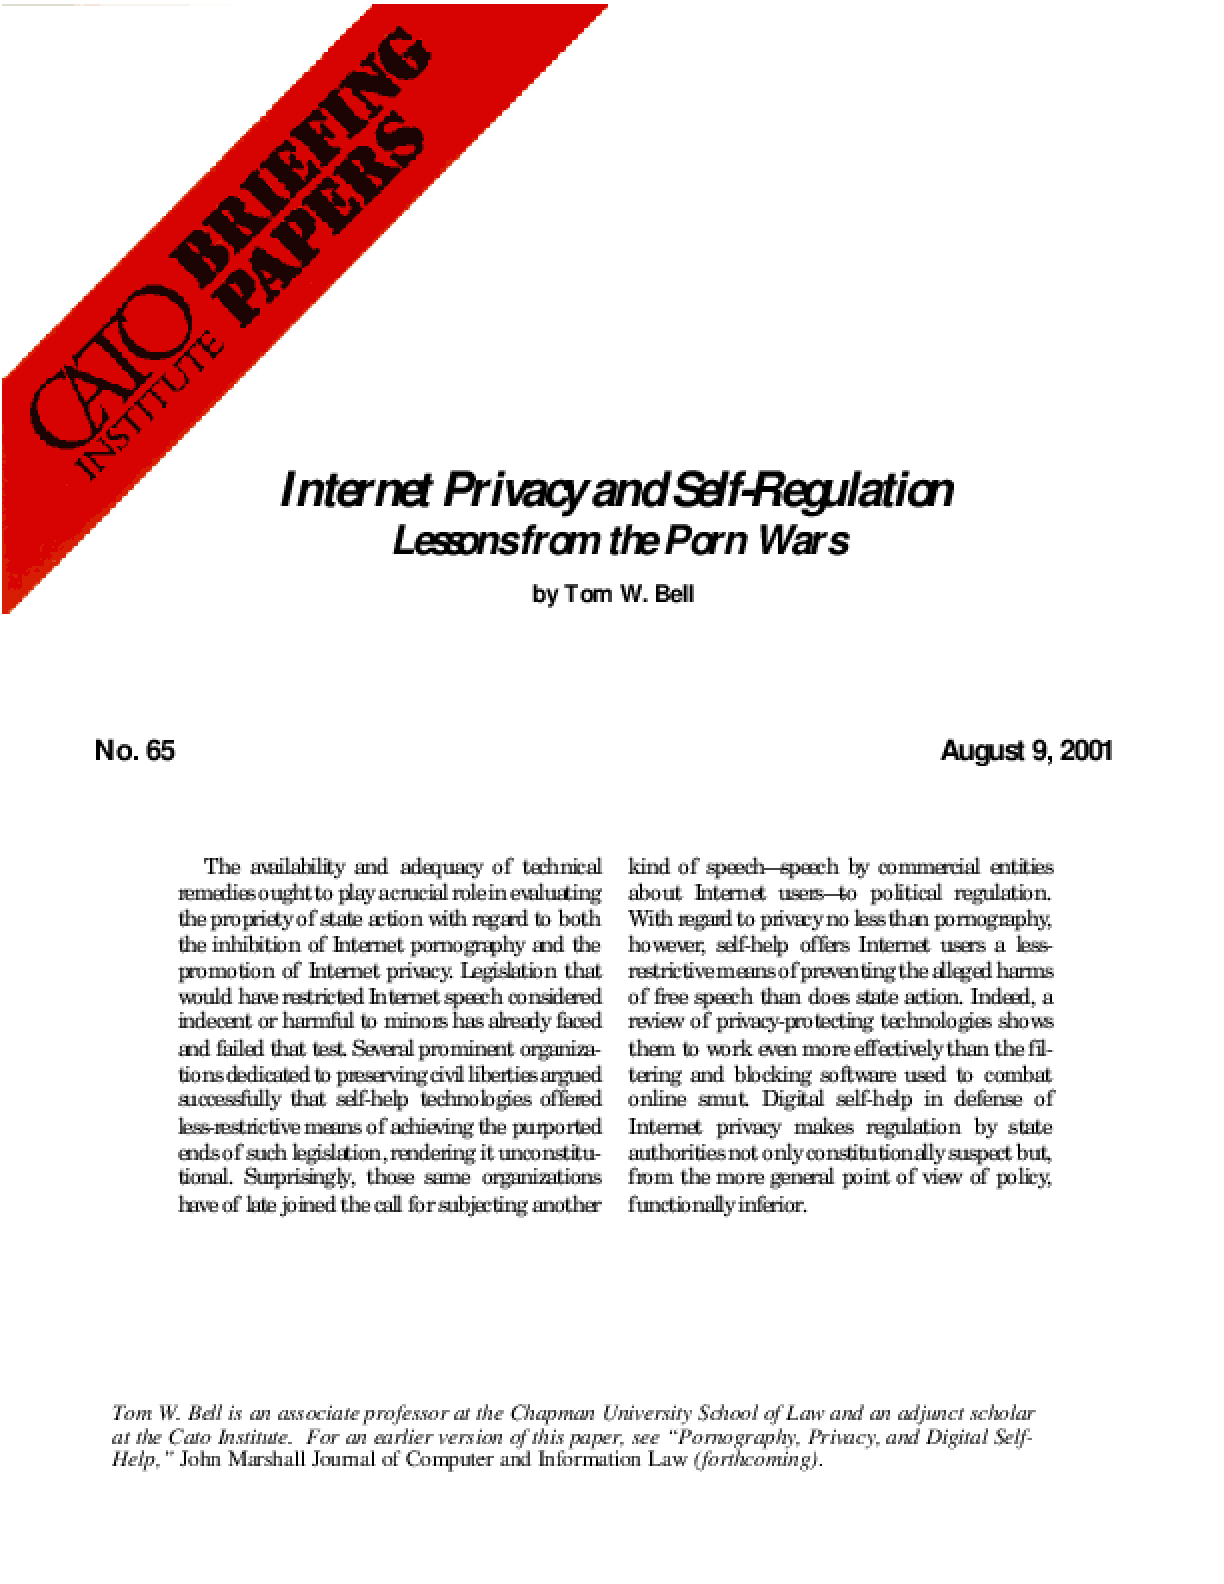 Internet Privacy and Self-Regulation: Lessons from the Porn Wars